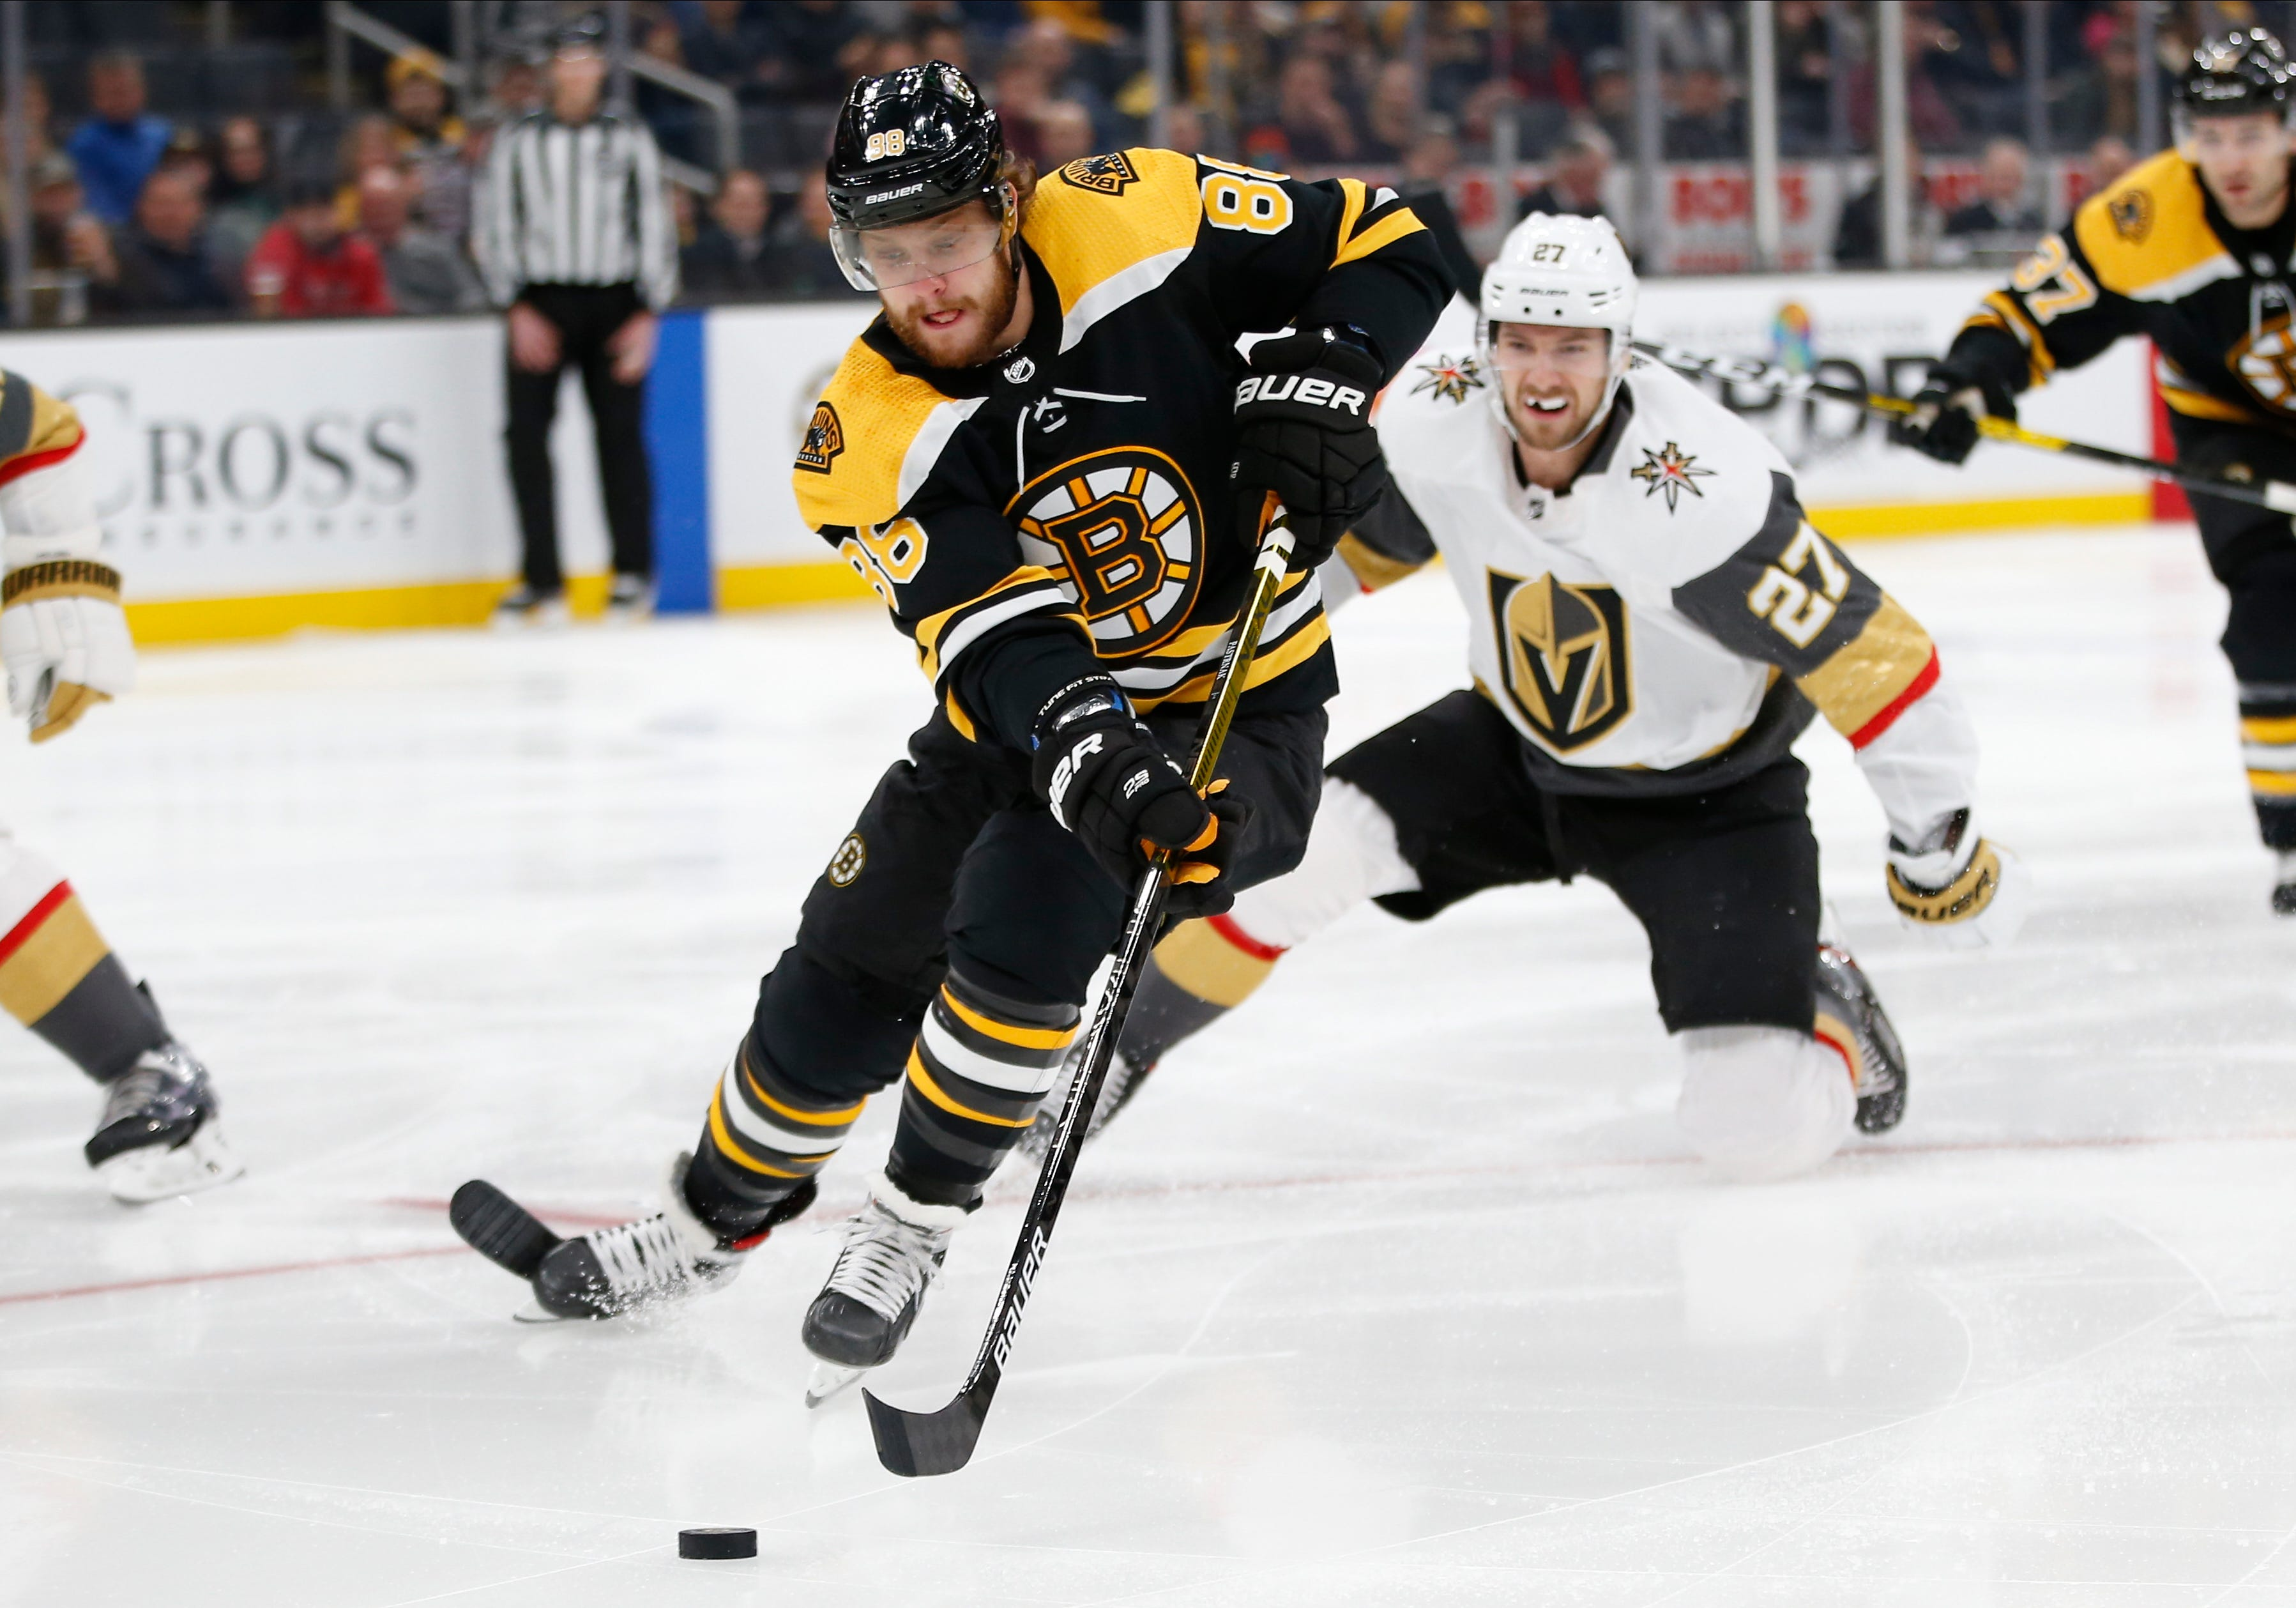 Bruins' Pastrnak will be 'big supporter' of teammates in NHL All-Star